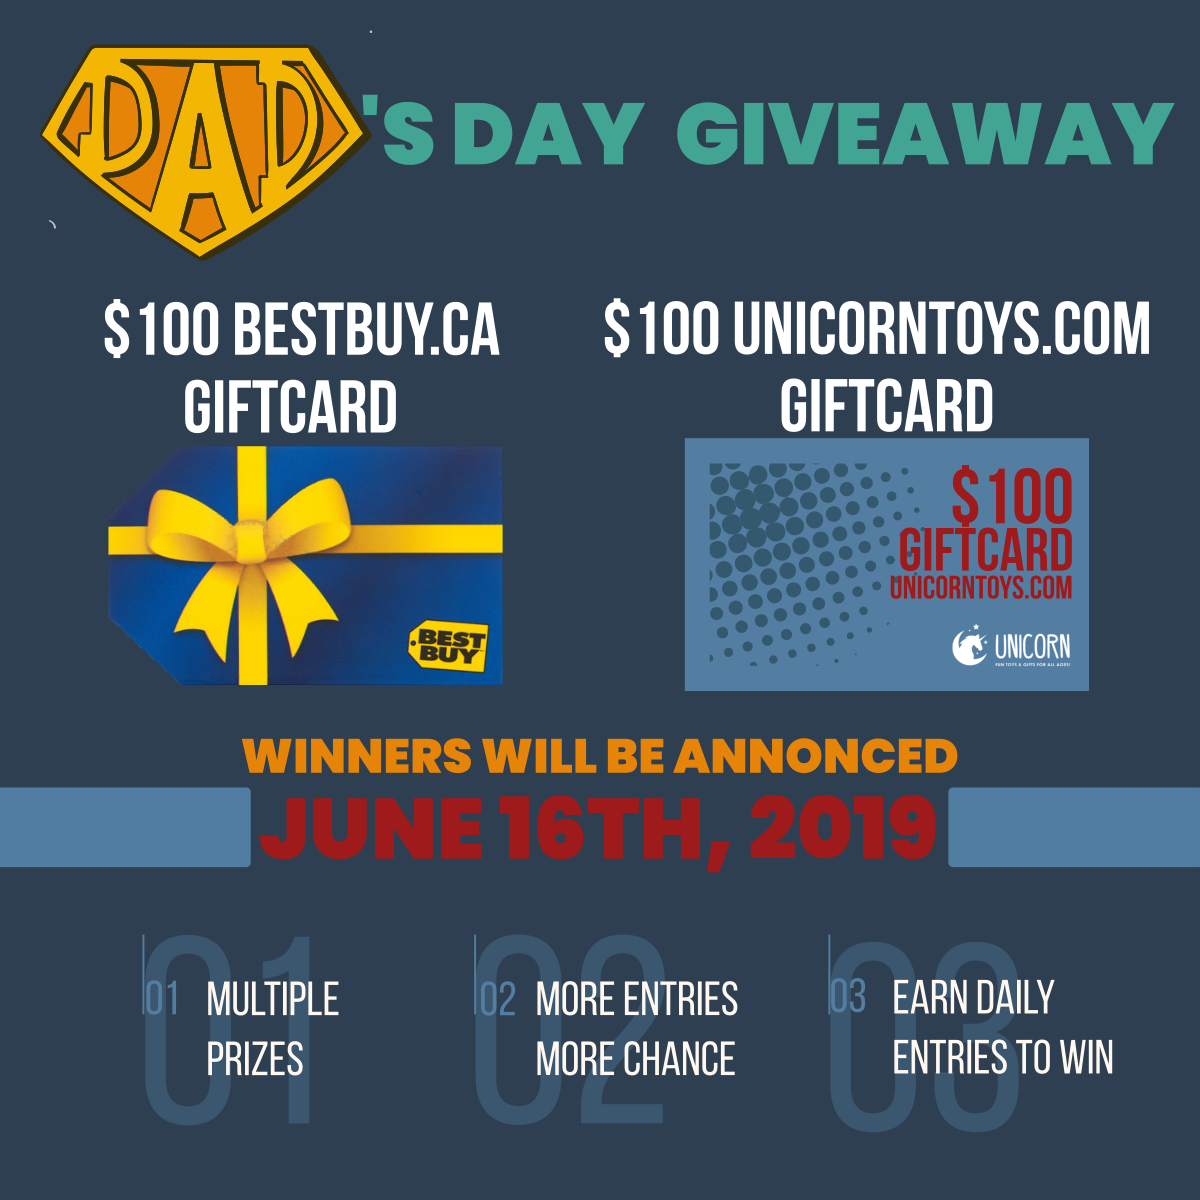 Super Dad Giveaway: Let's celebrate this Father's Day your way!